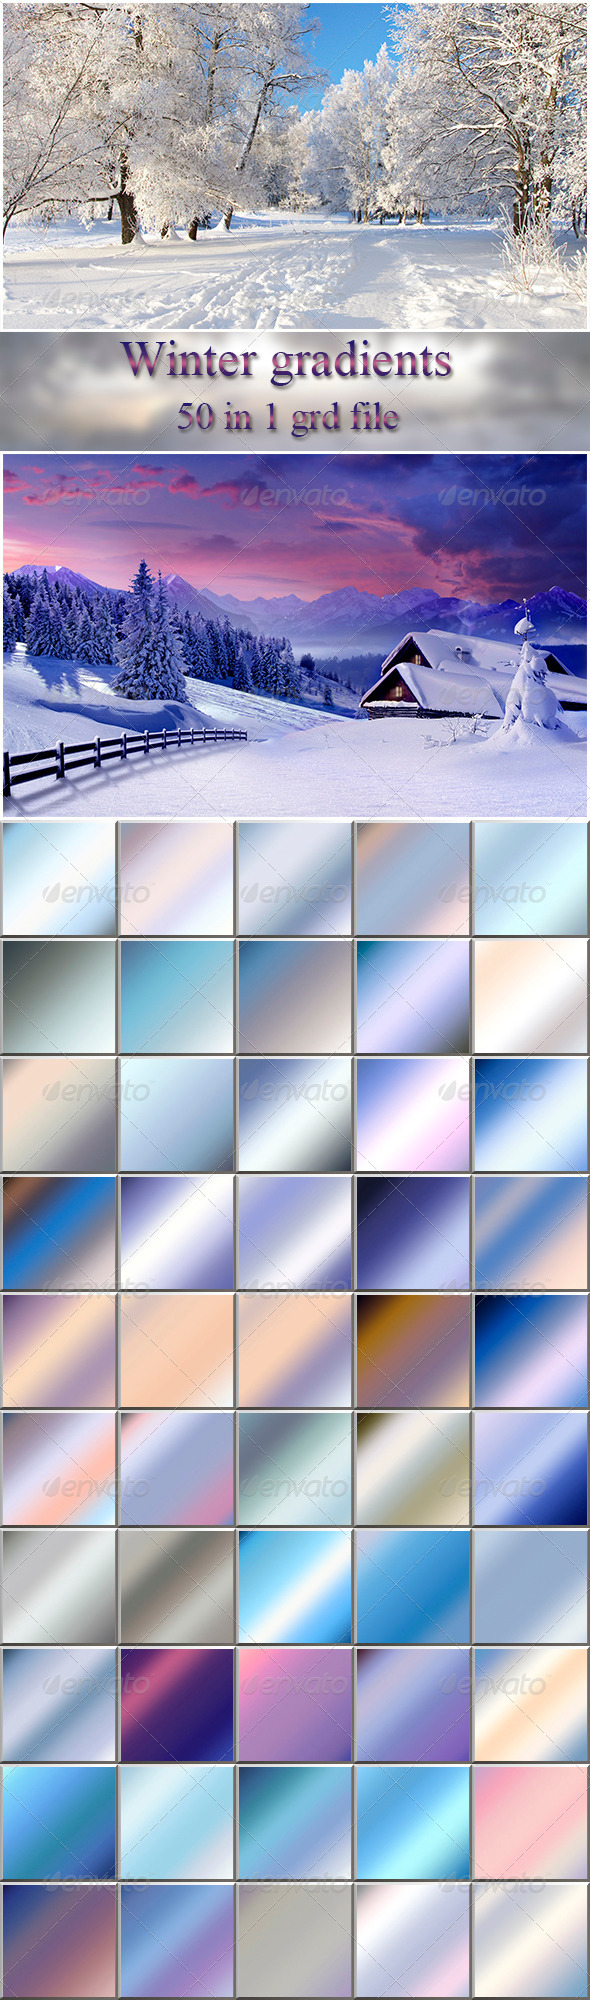 GraphicRiver Winter Gradients 6403001